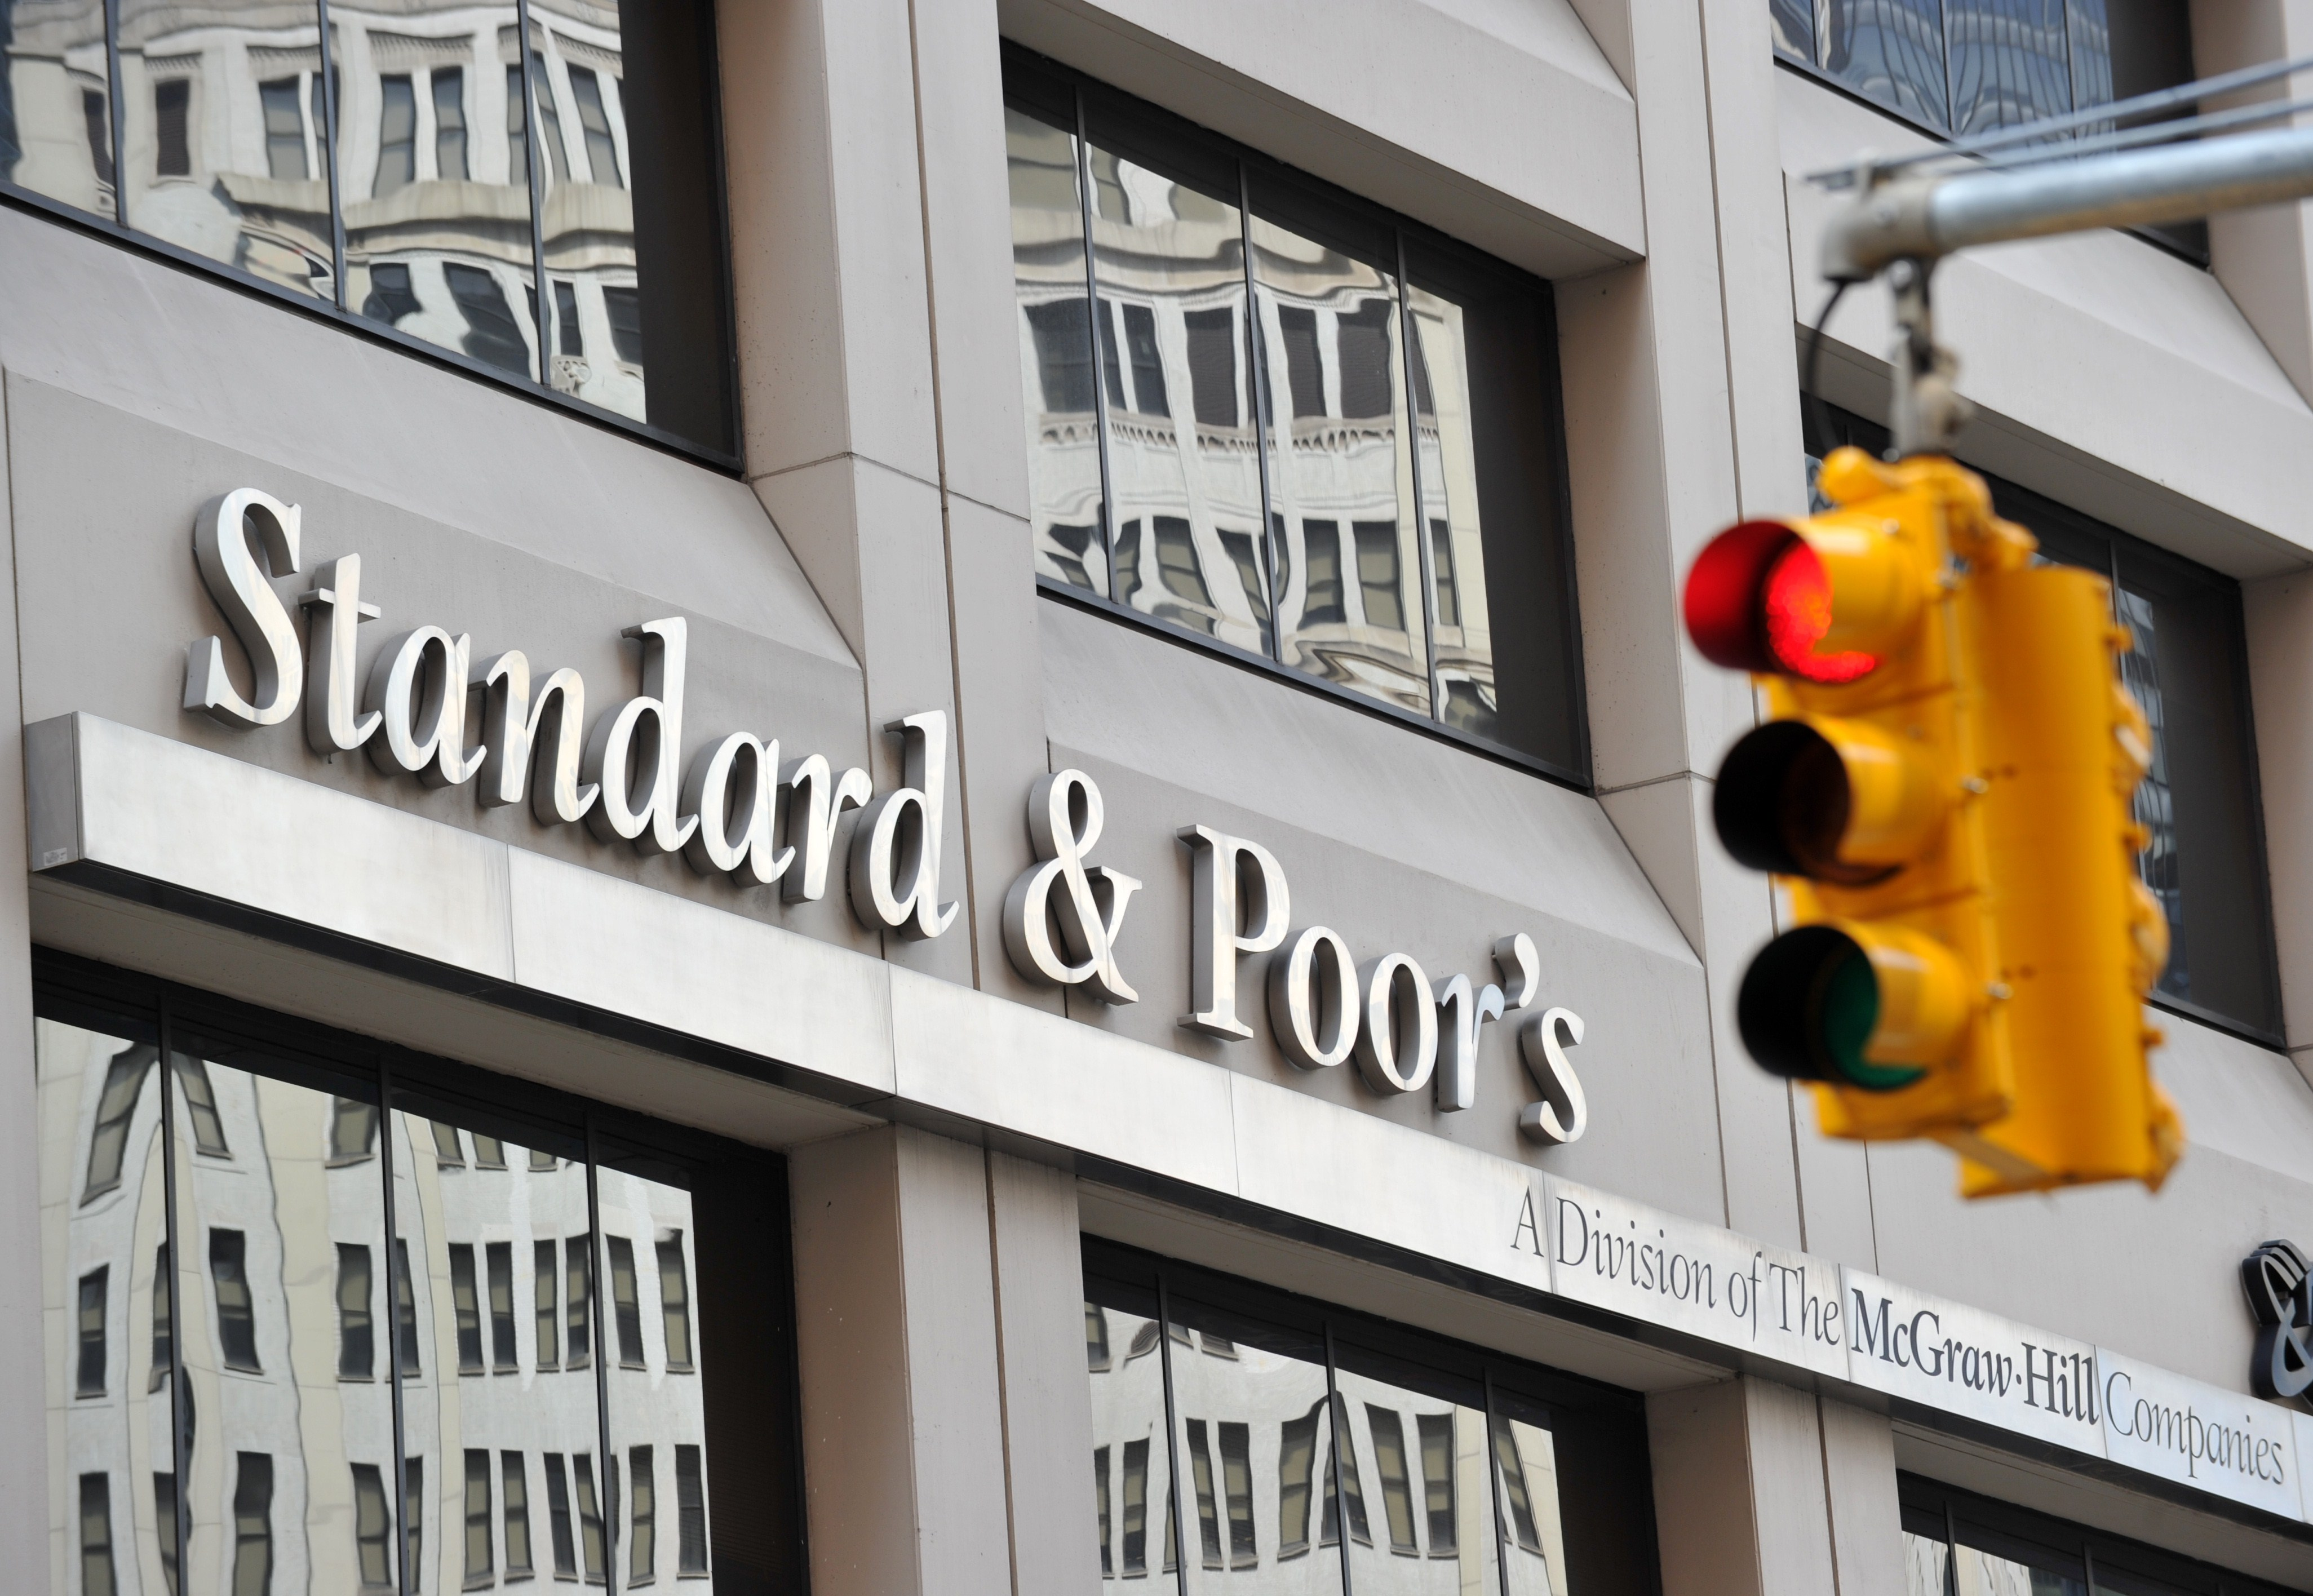 (FILES) - A picture taken on August 6, 2011 shows Standard & Poor's headquarters in the financial district of New York. Standard & Poor's has decided to downgrade France's top-notch credit rating but will spare Germany, Belgium, Luxembourg and the Netherlands, an EU government source told AFP on January 13, 2012. AFP PHOTO / Stan HONDA